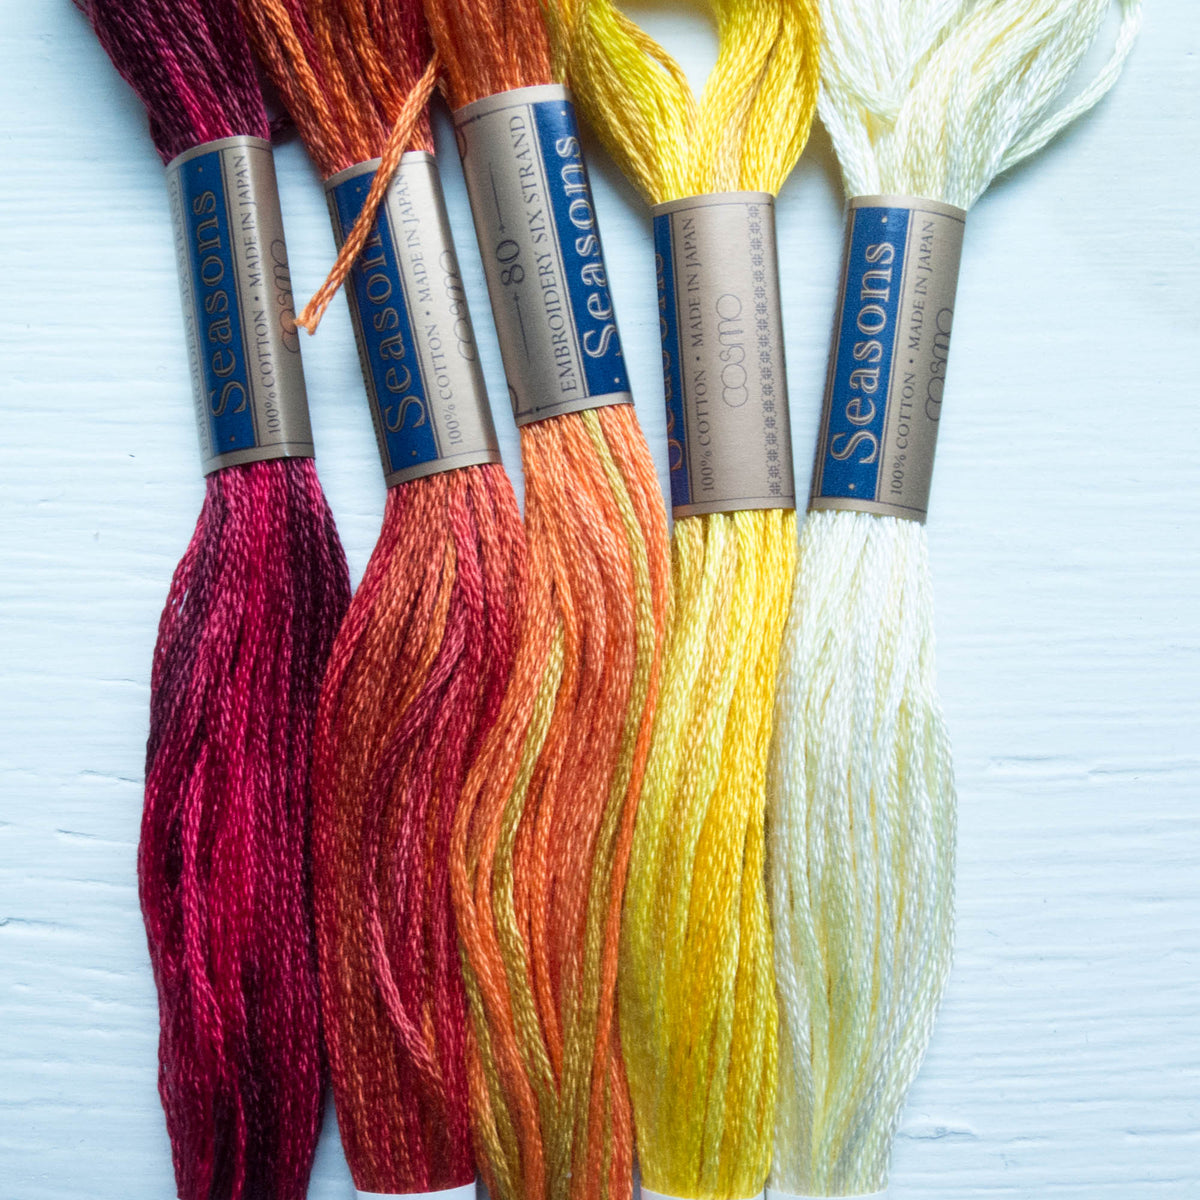 COSMO Seasons Variegated Embroidery Floss - 5006, 5007, 5008, 5009, 5010 Floss - Snuggly Monkey